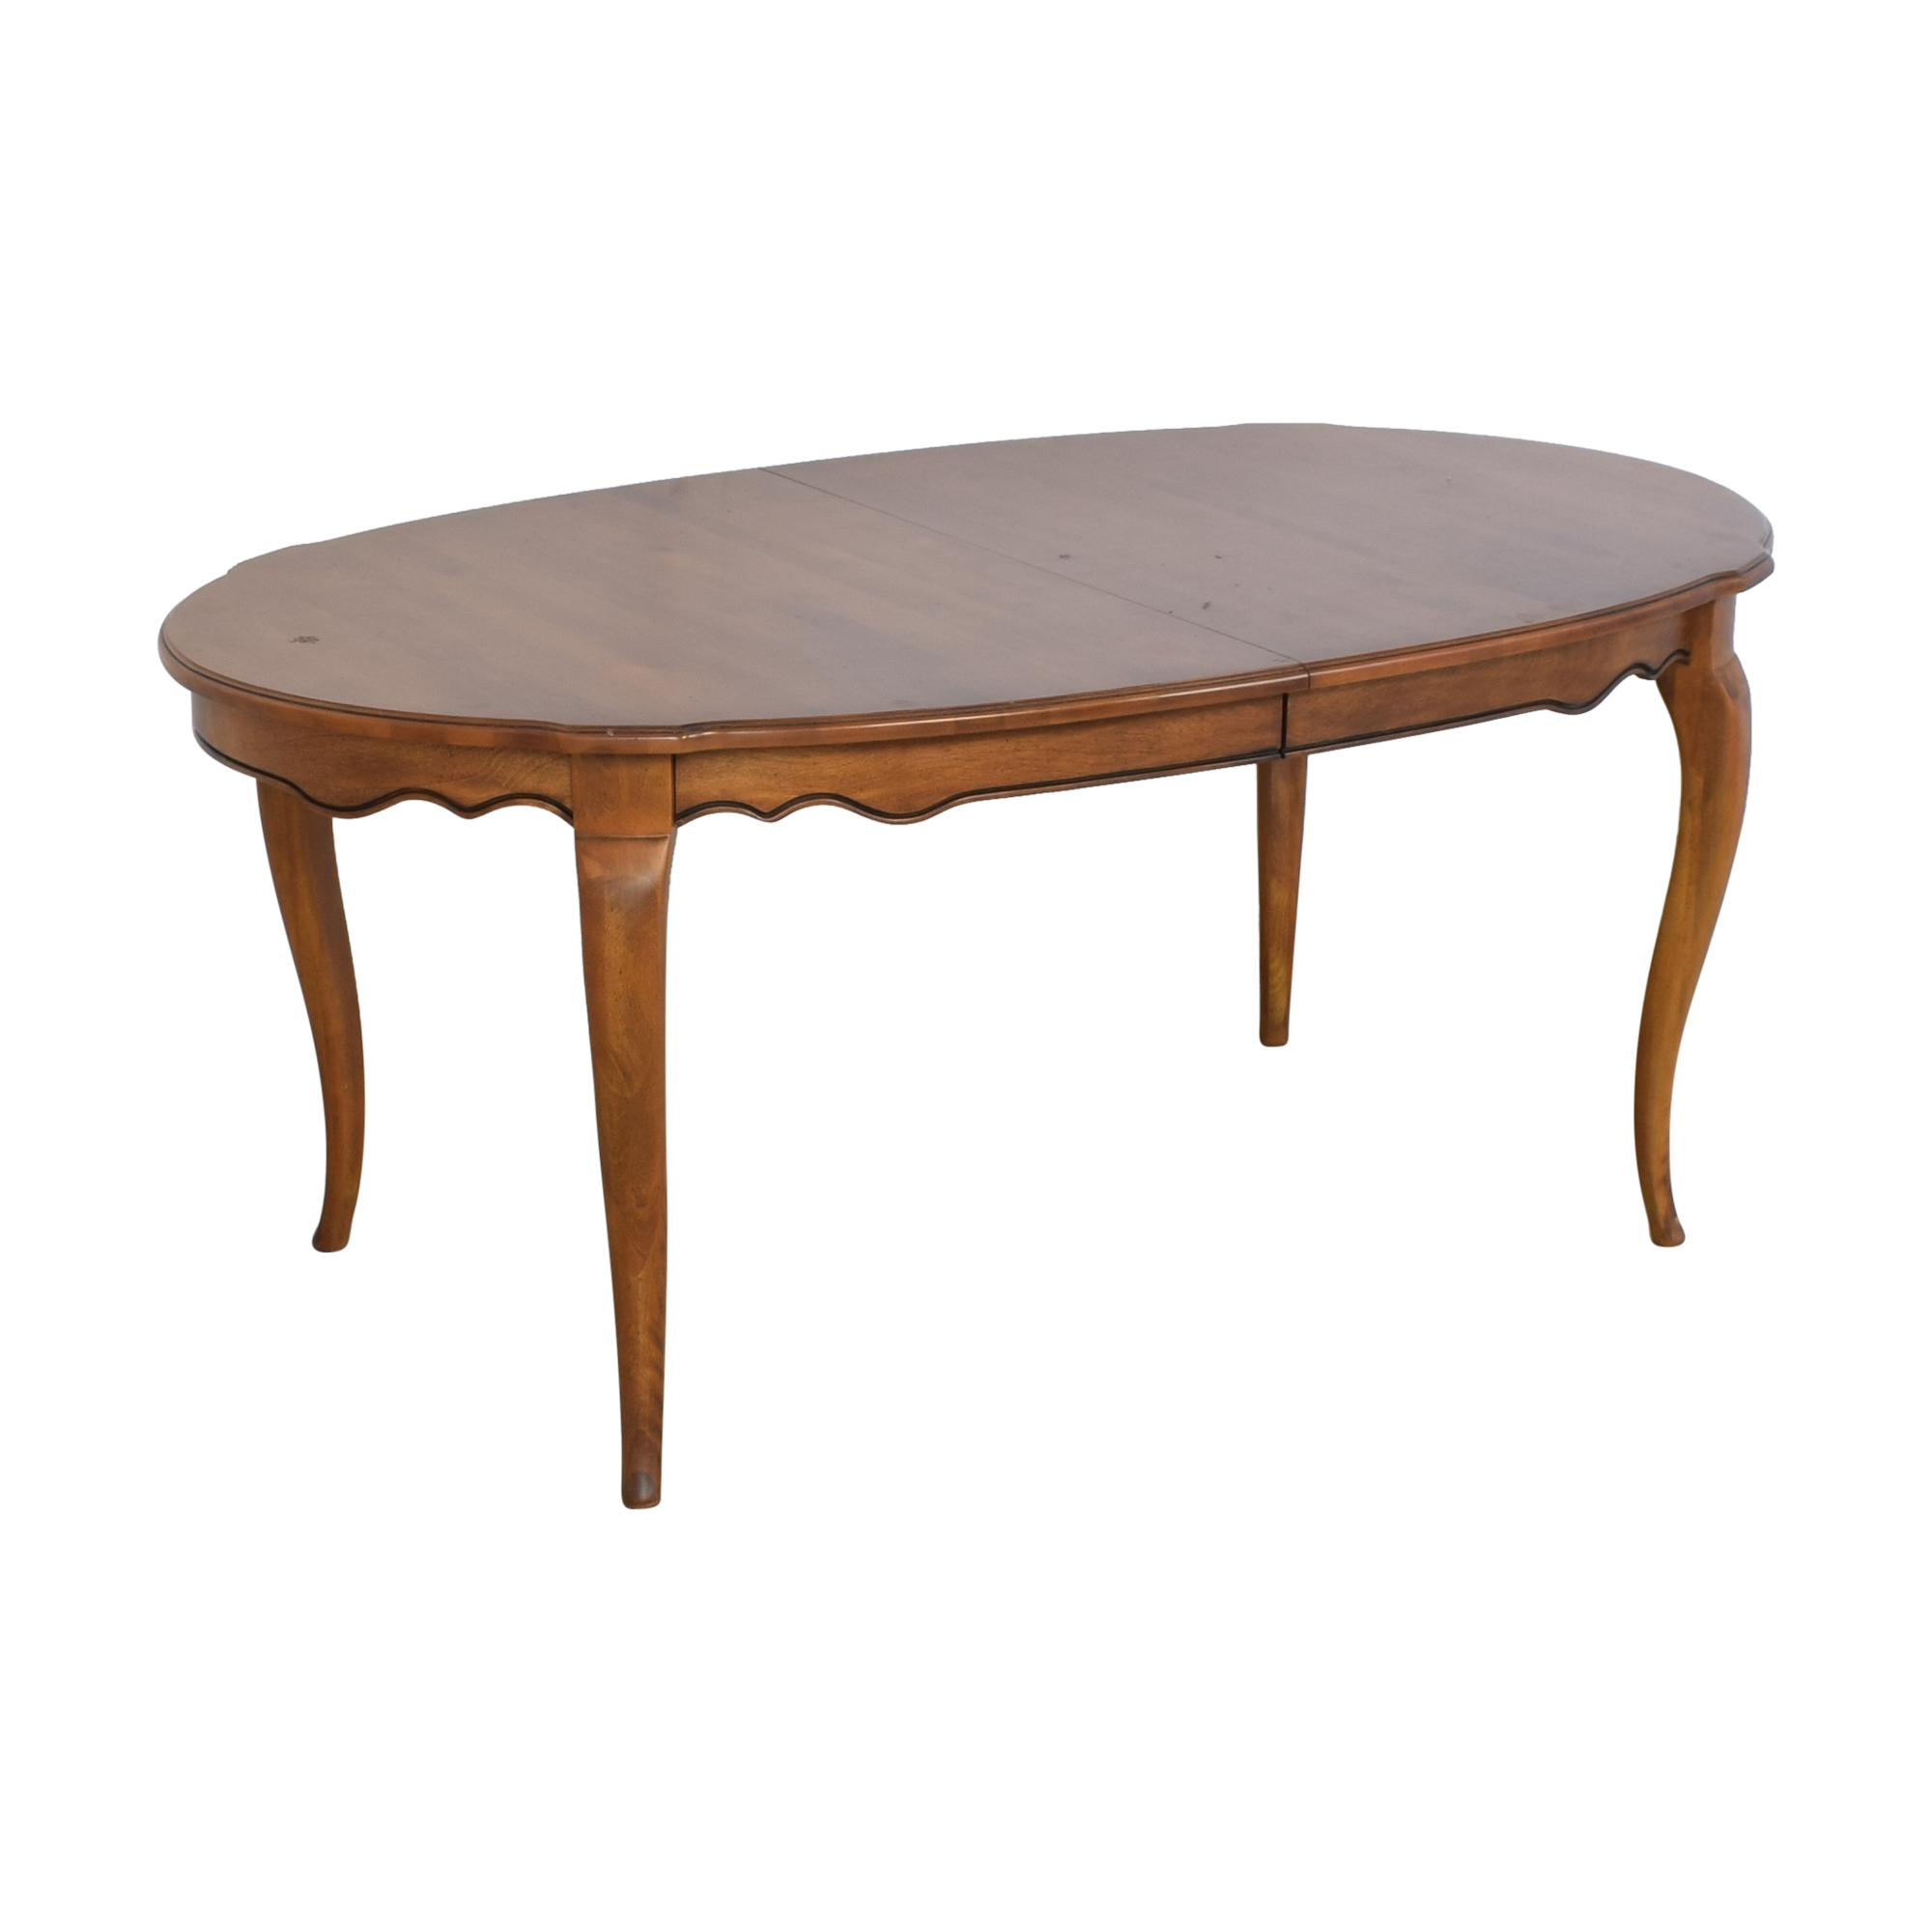 Ethan Allen Ethan Allen Extendable Dining Table Brown